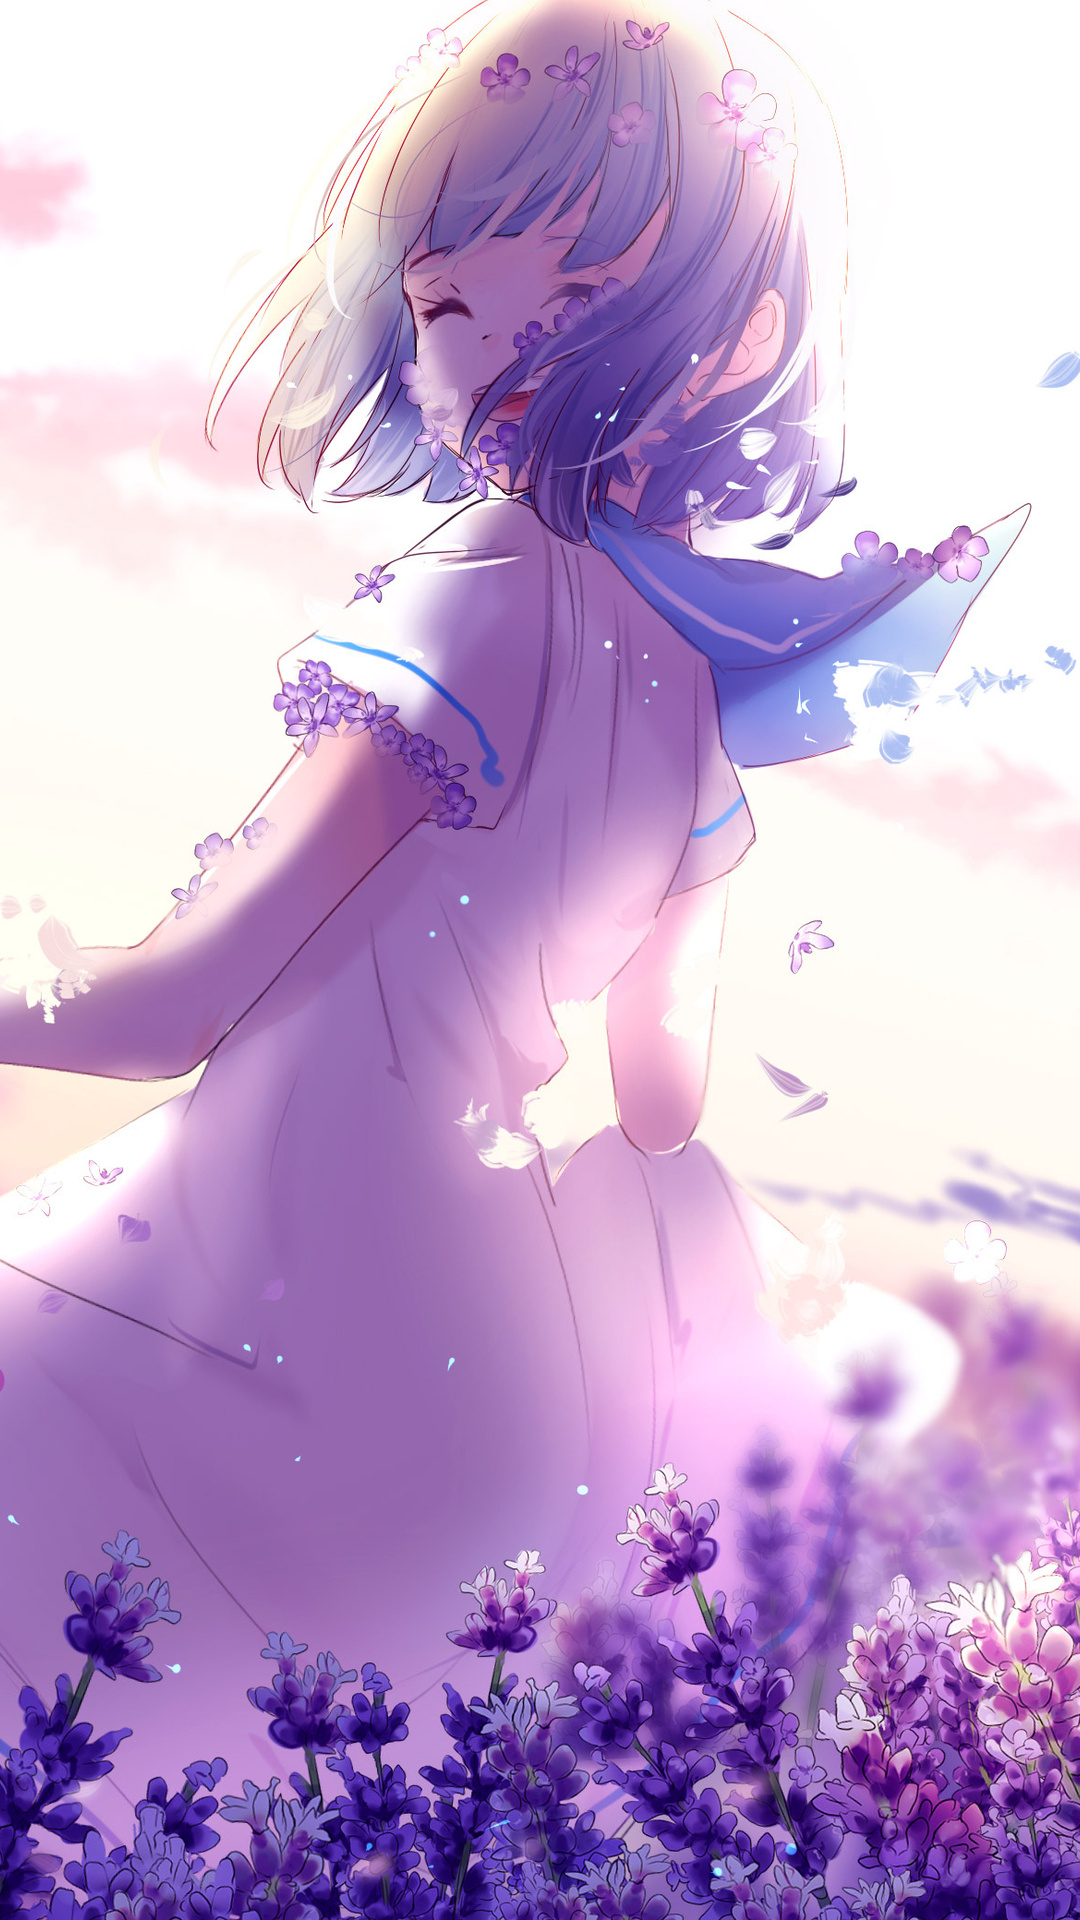 anime-short-hairs-butterfly-dress-flowers-xa.jpg